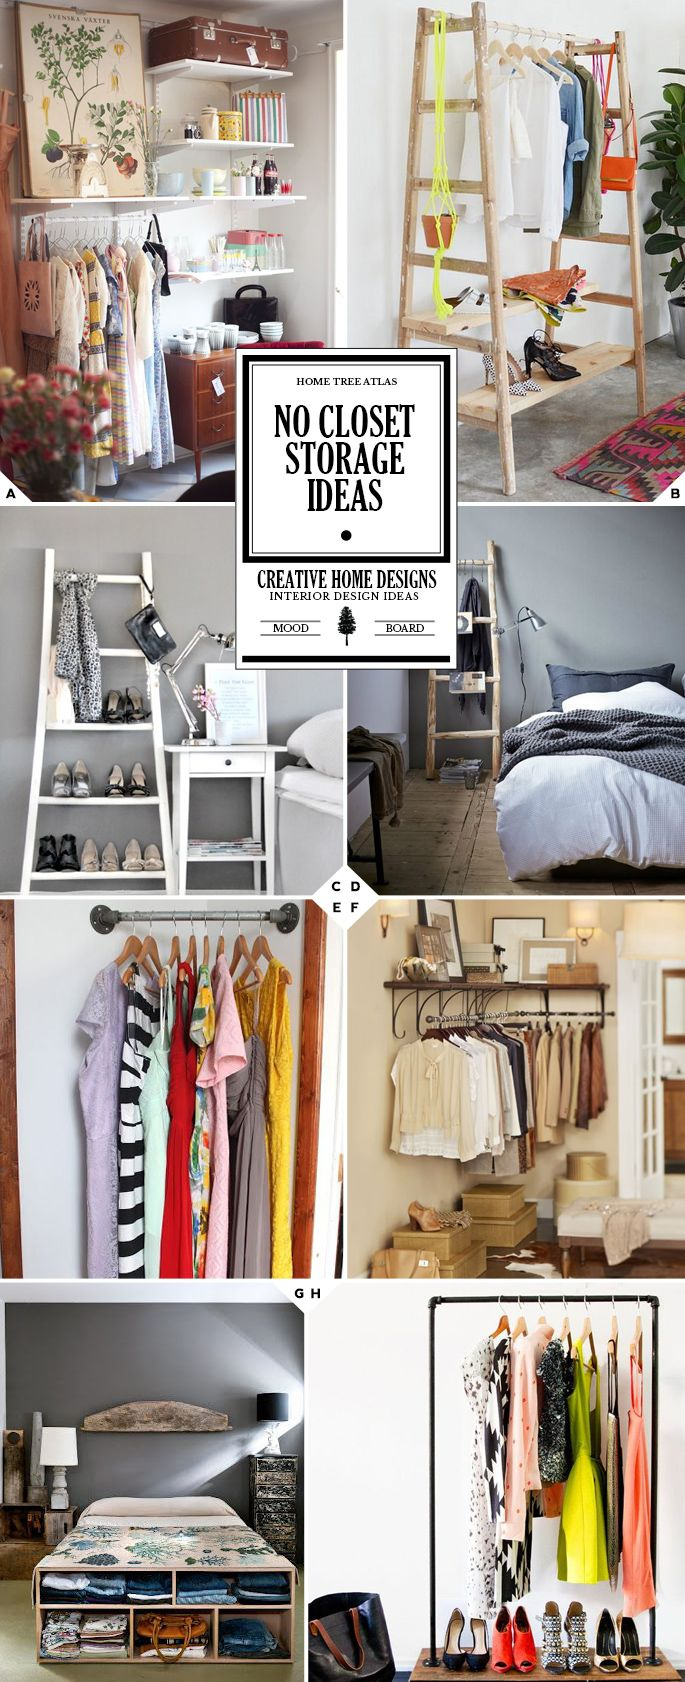 Getting Creative No Closet Solutions And Storage Ideas No